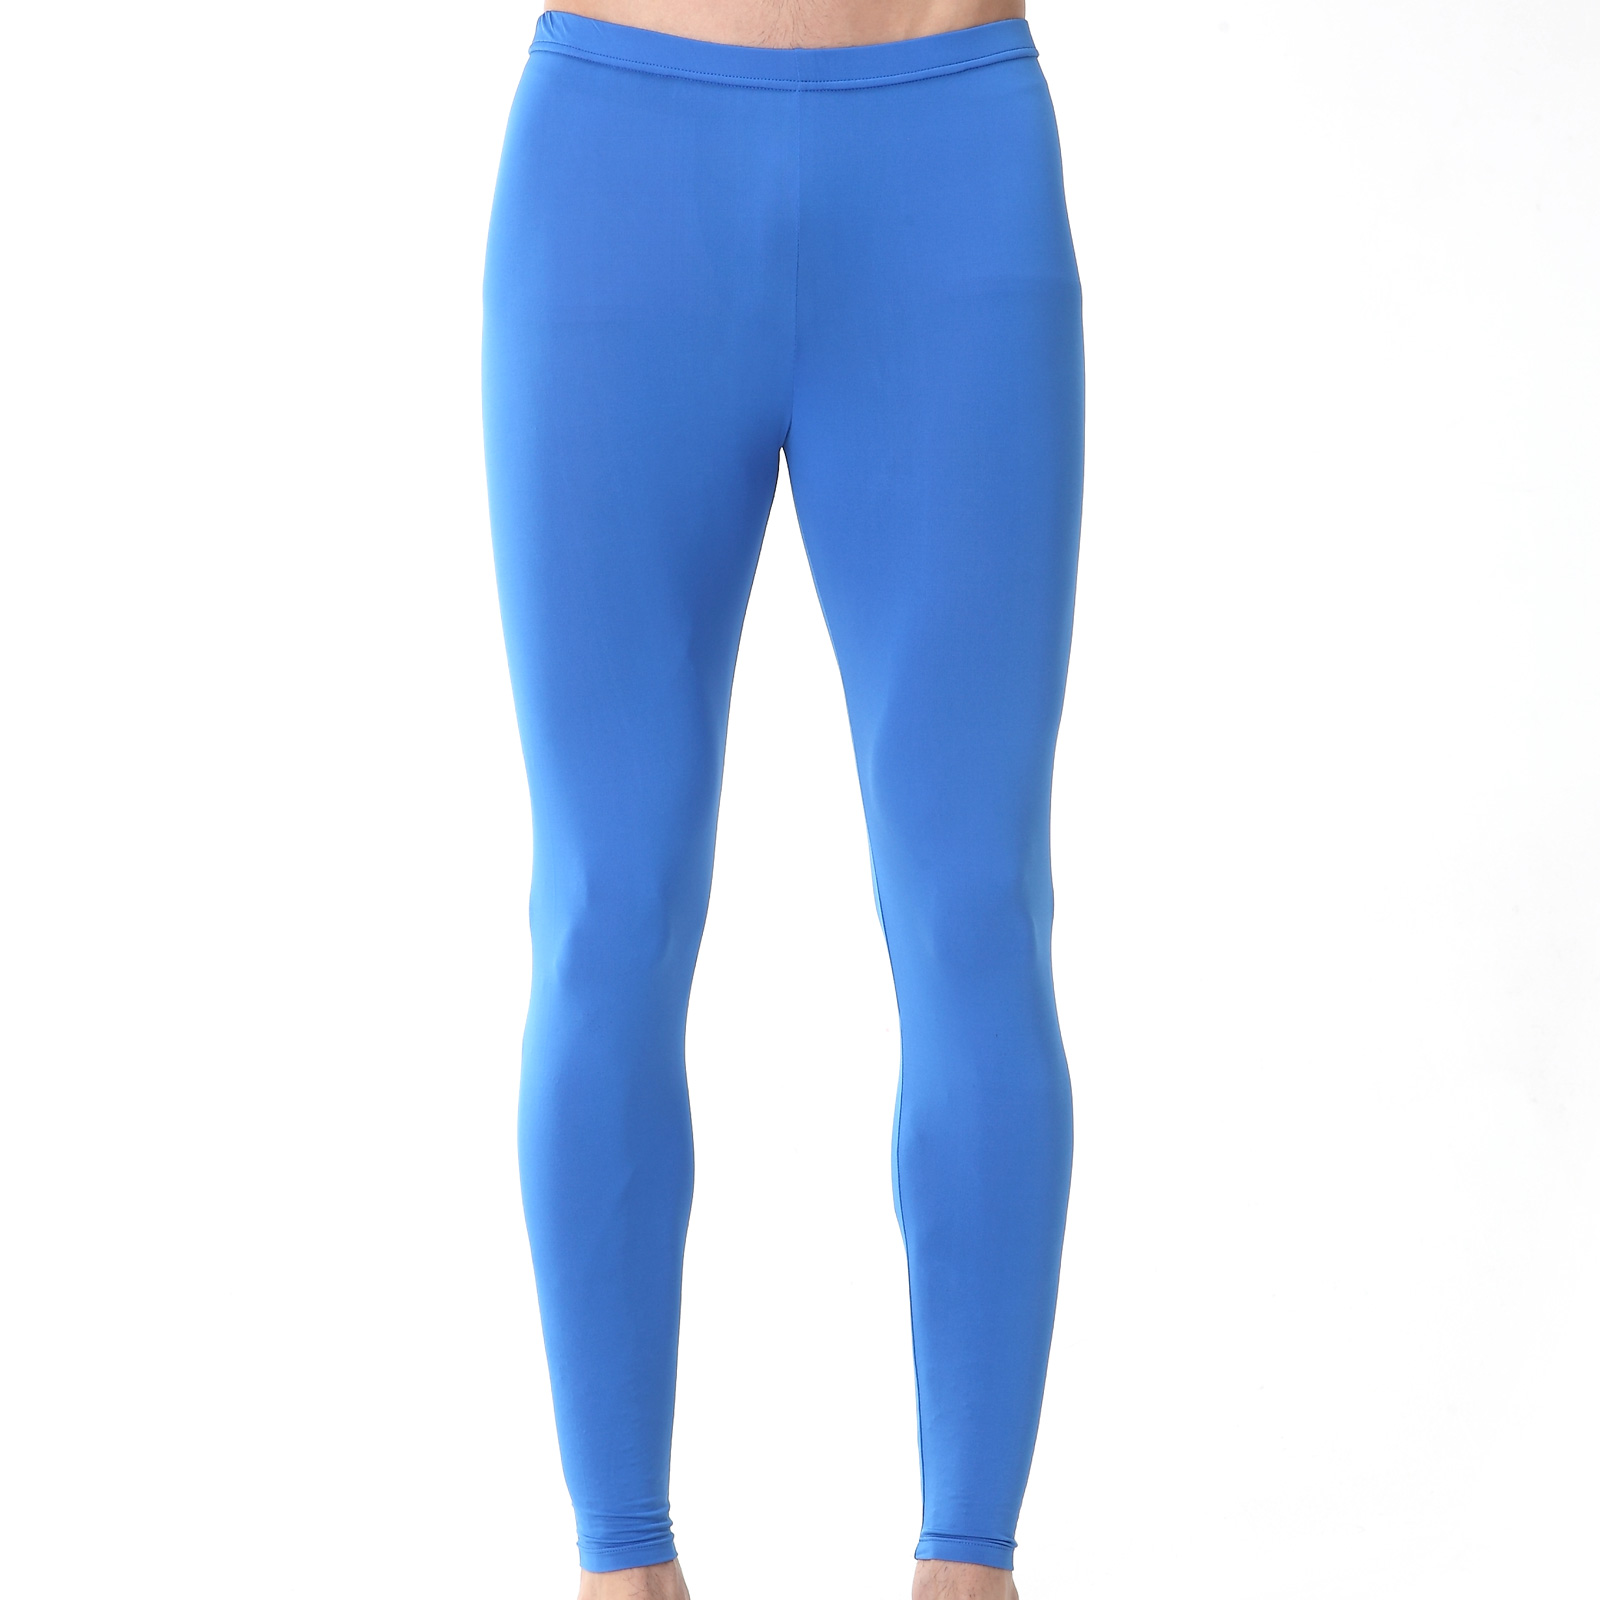 7873a2c7f1 Mens Compression Long Pants EP Blue - ourunderwear